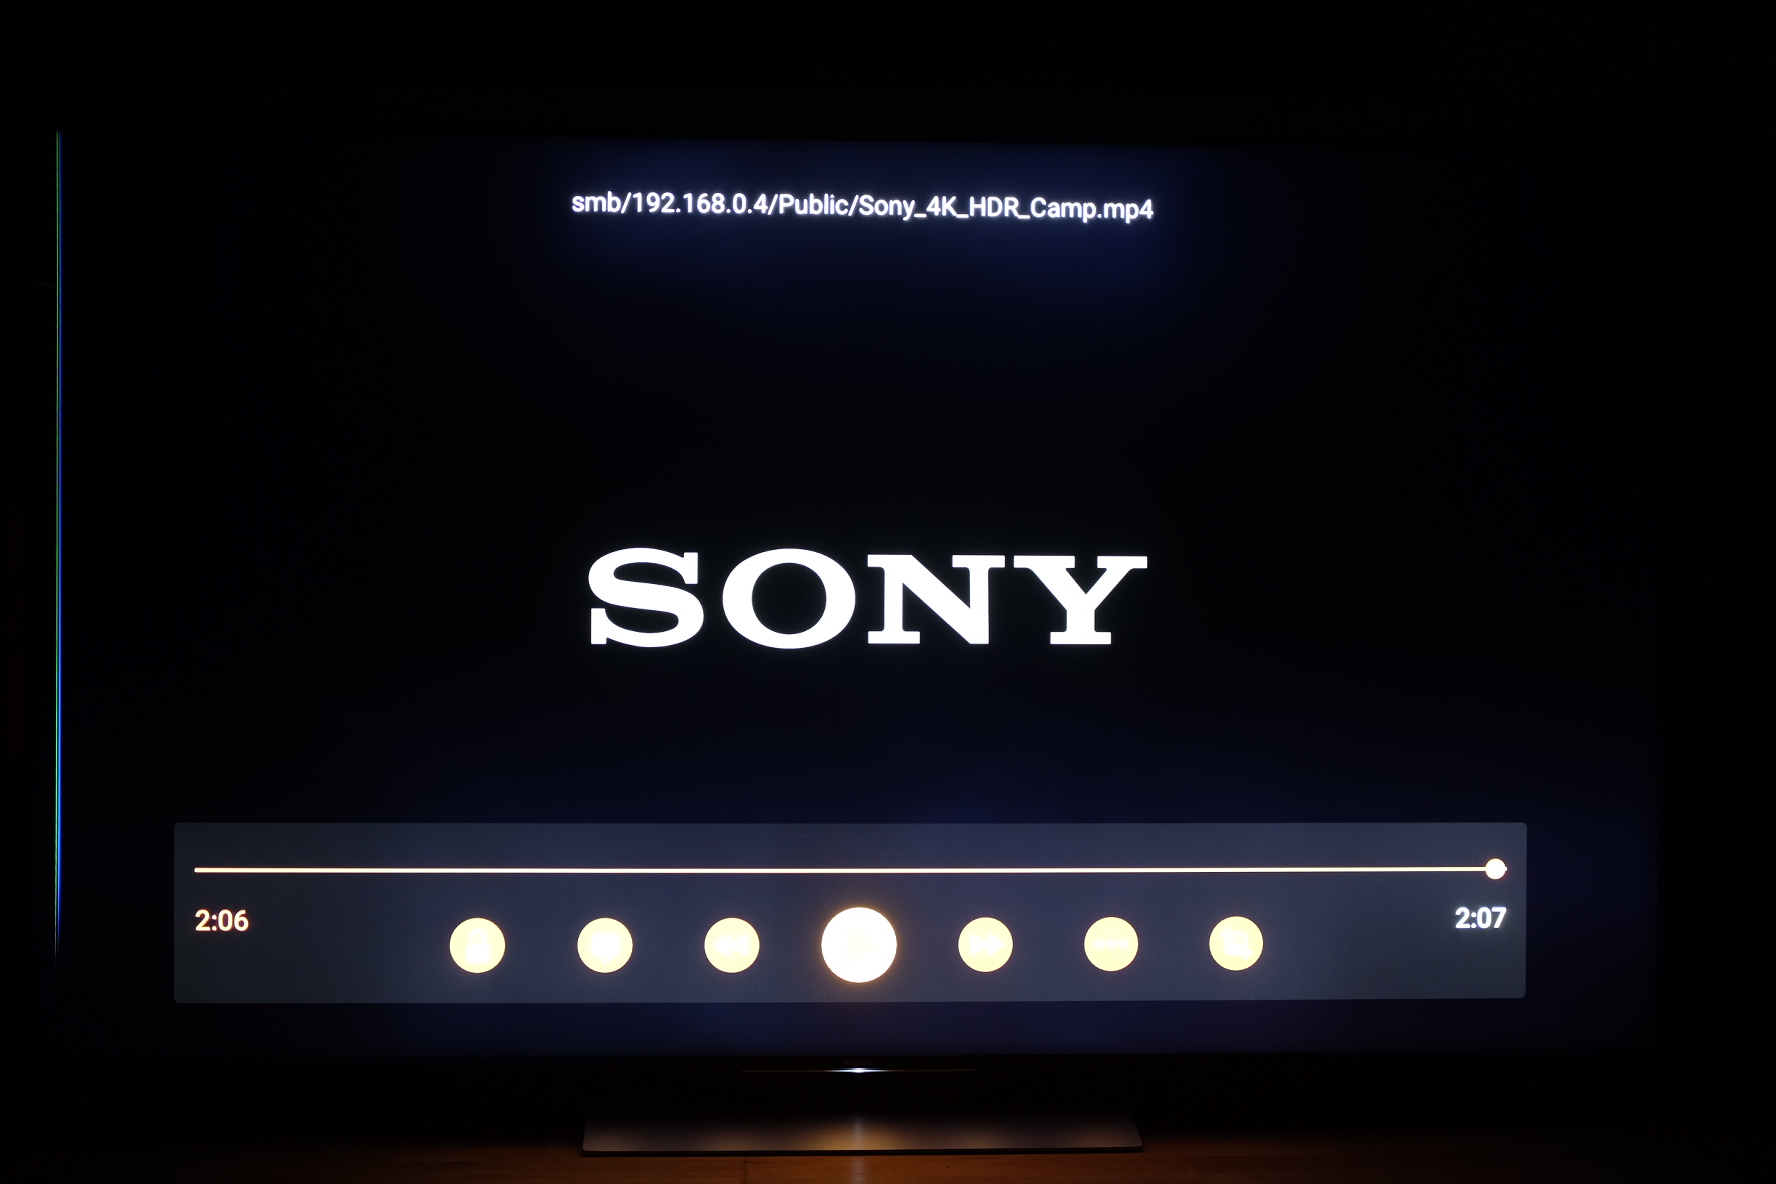 Sony Camp 4k Hdr